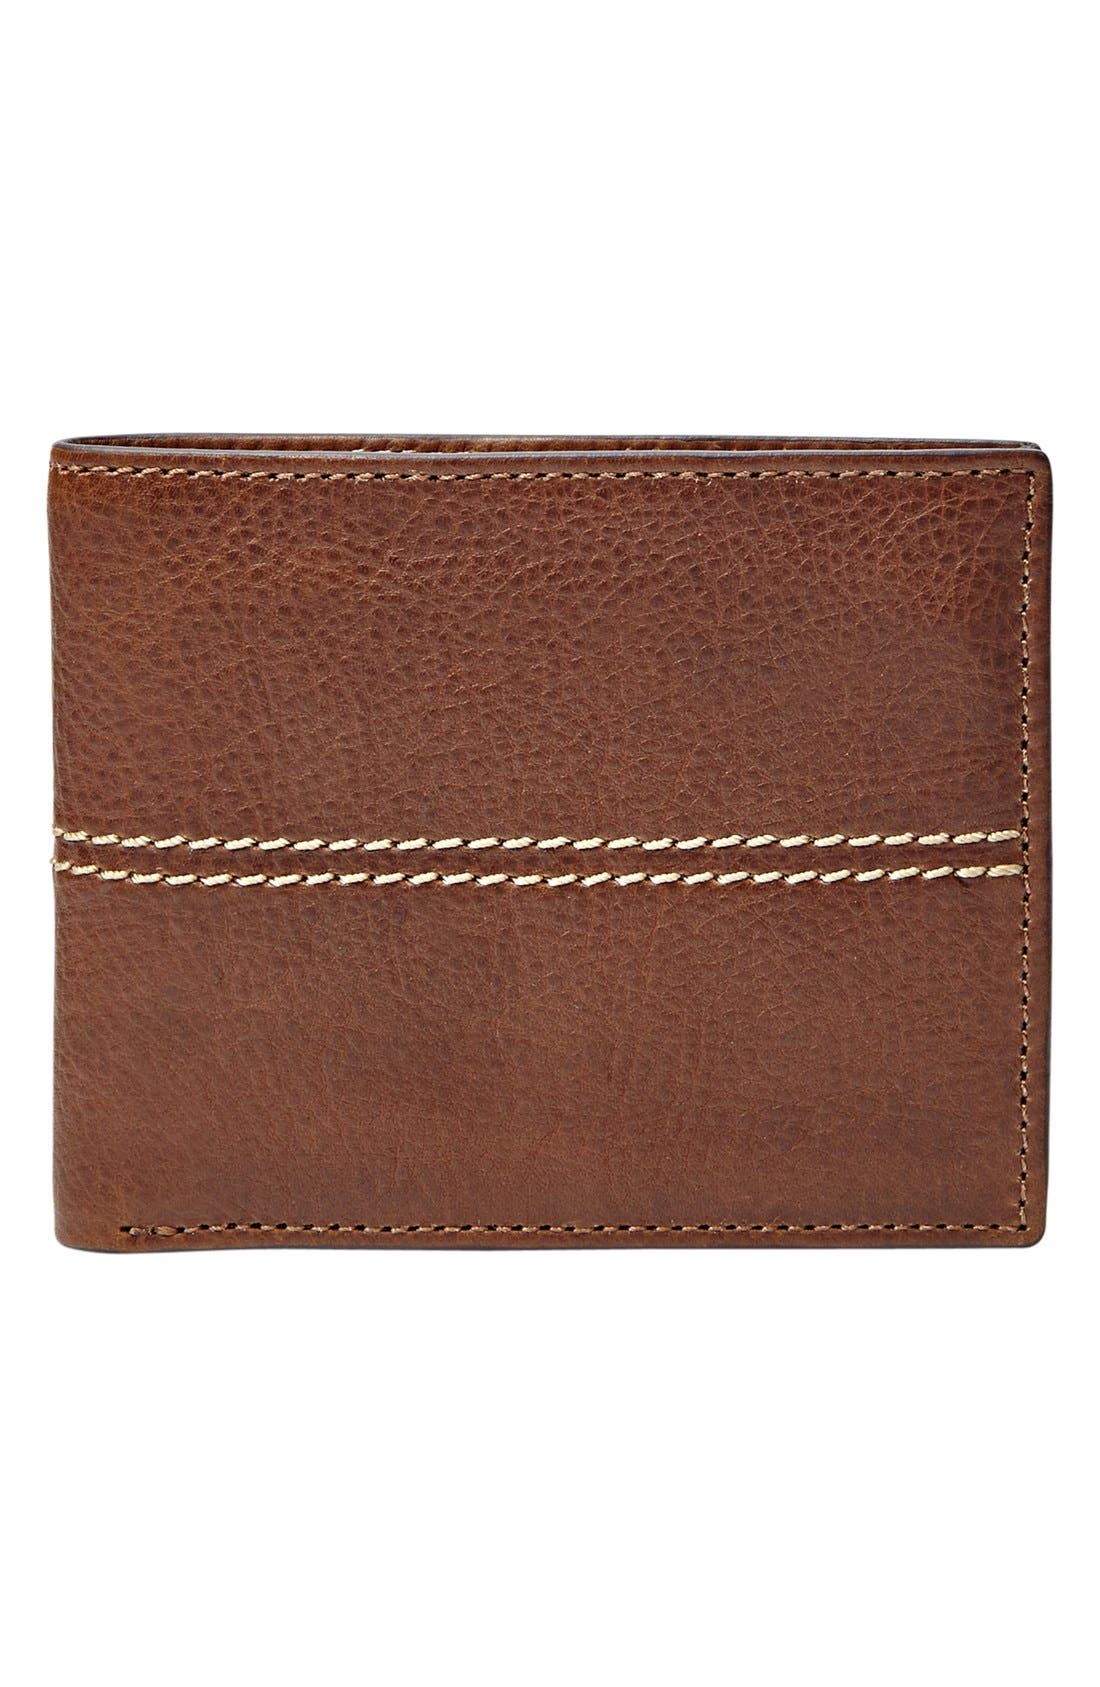 'Turk' Leather RFID Wallet,                             Main thumbnail 1, color,                             200